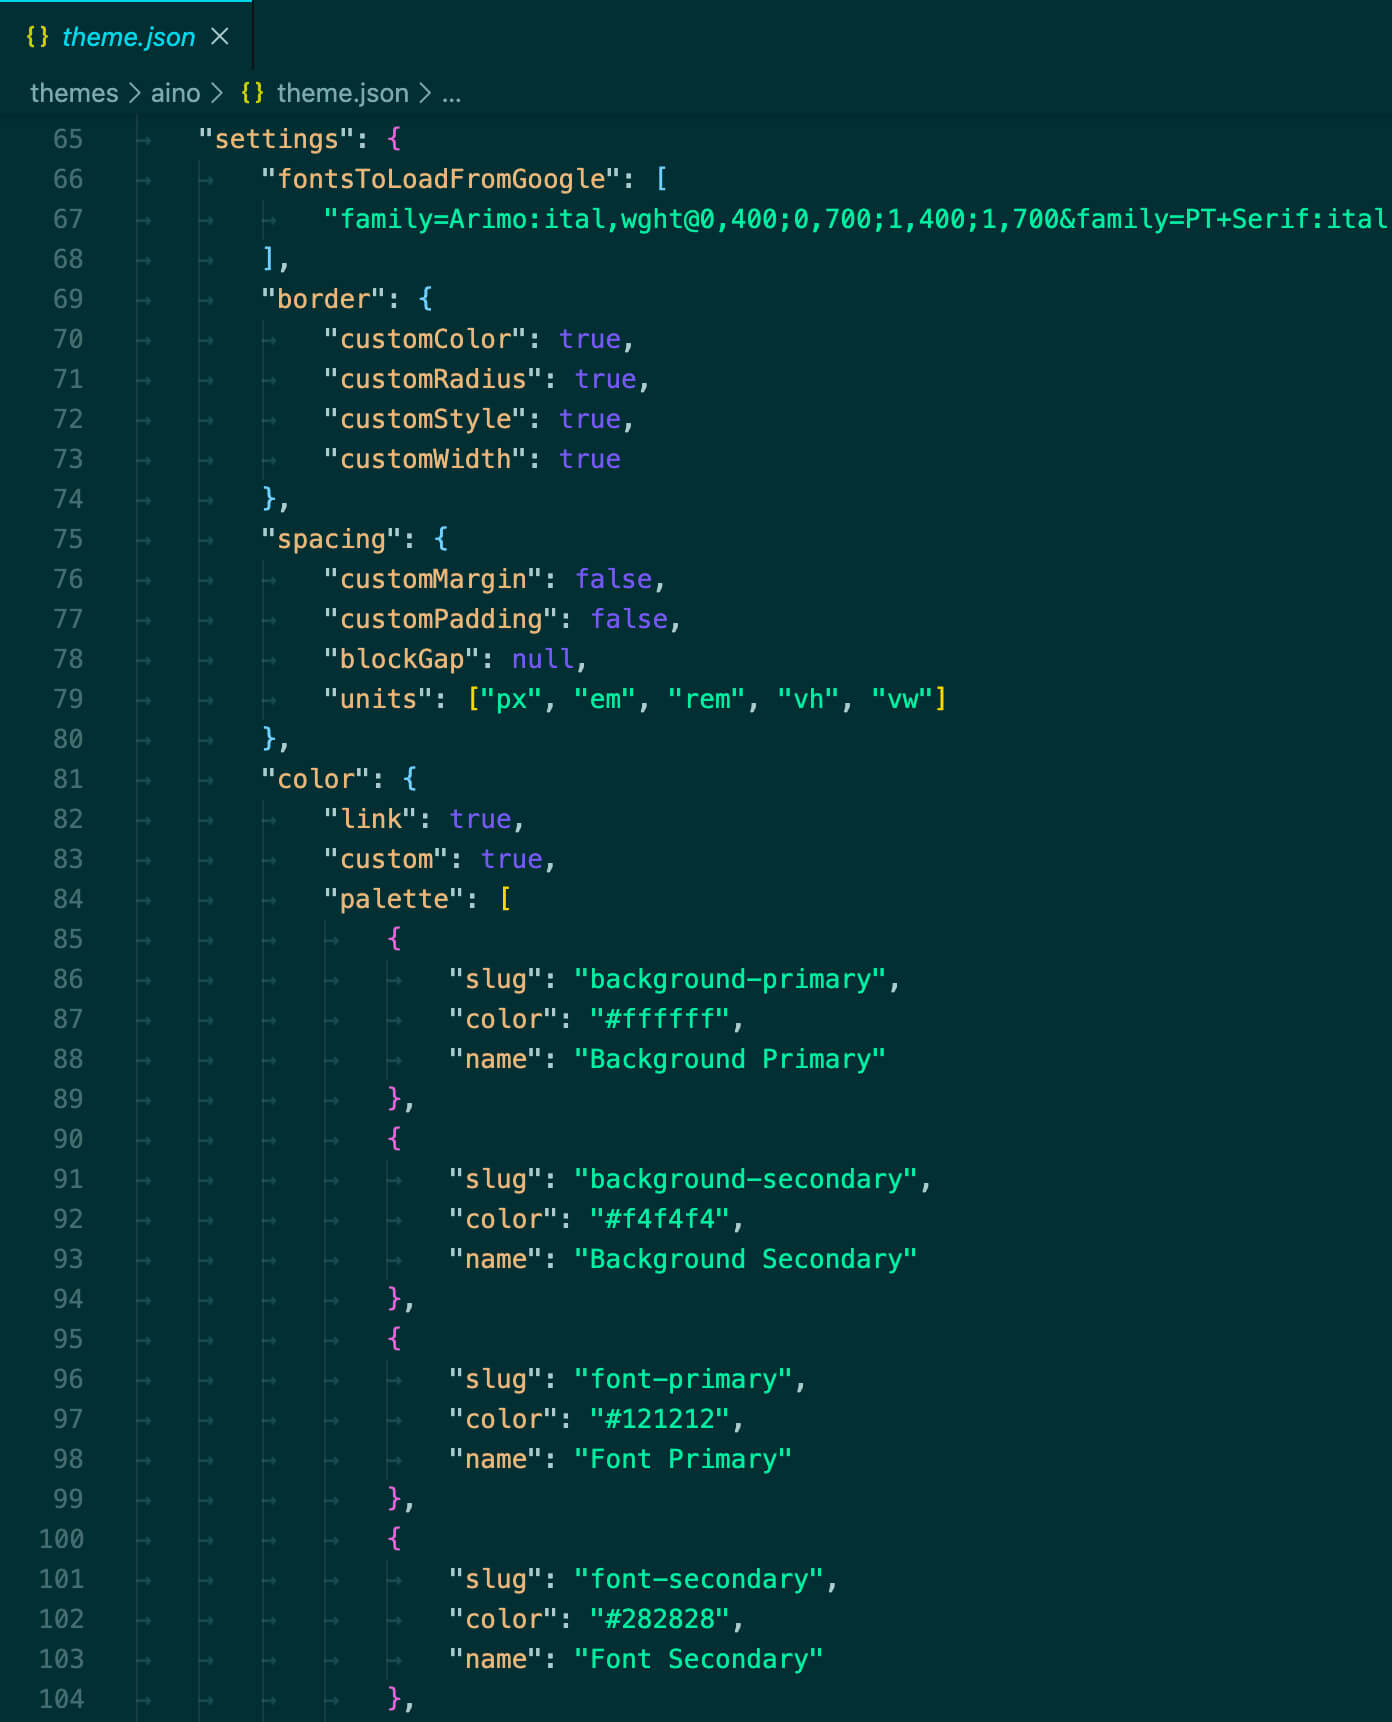 The theme.json file is the most important file in block themes.